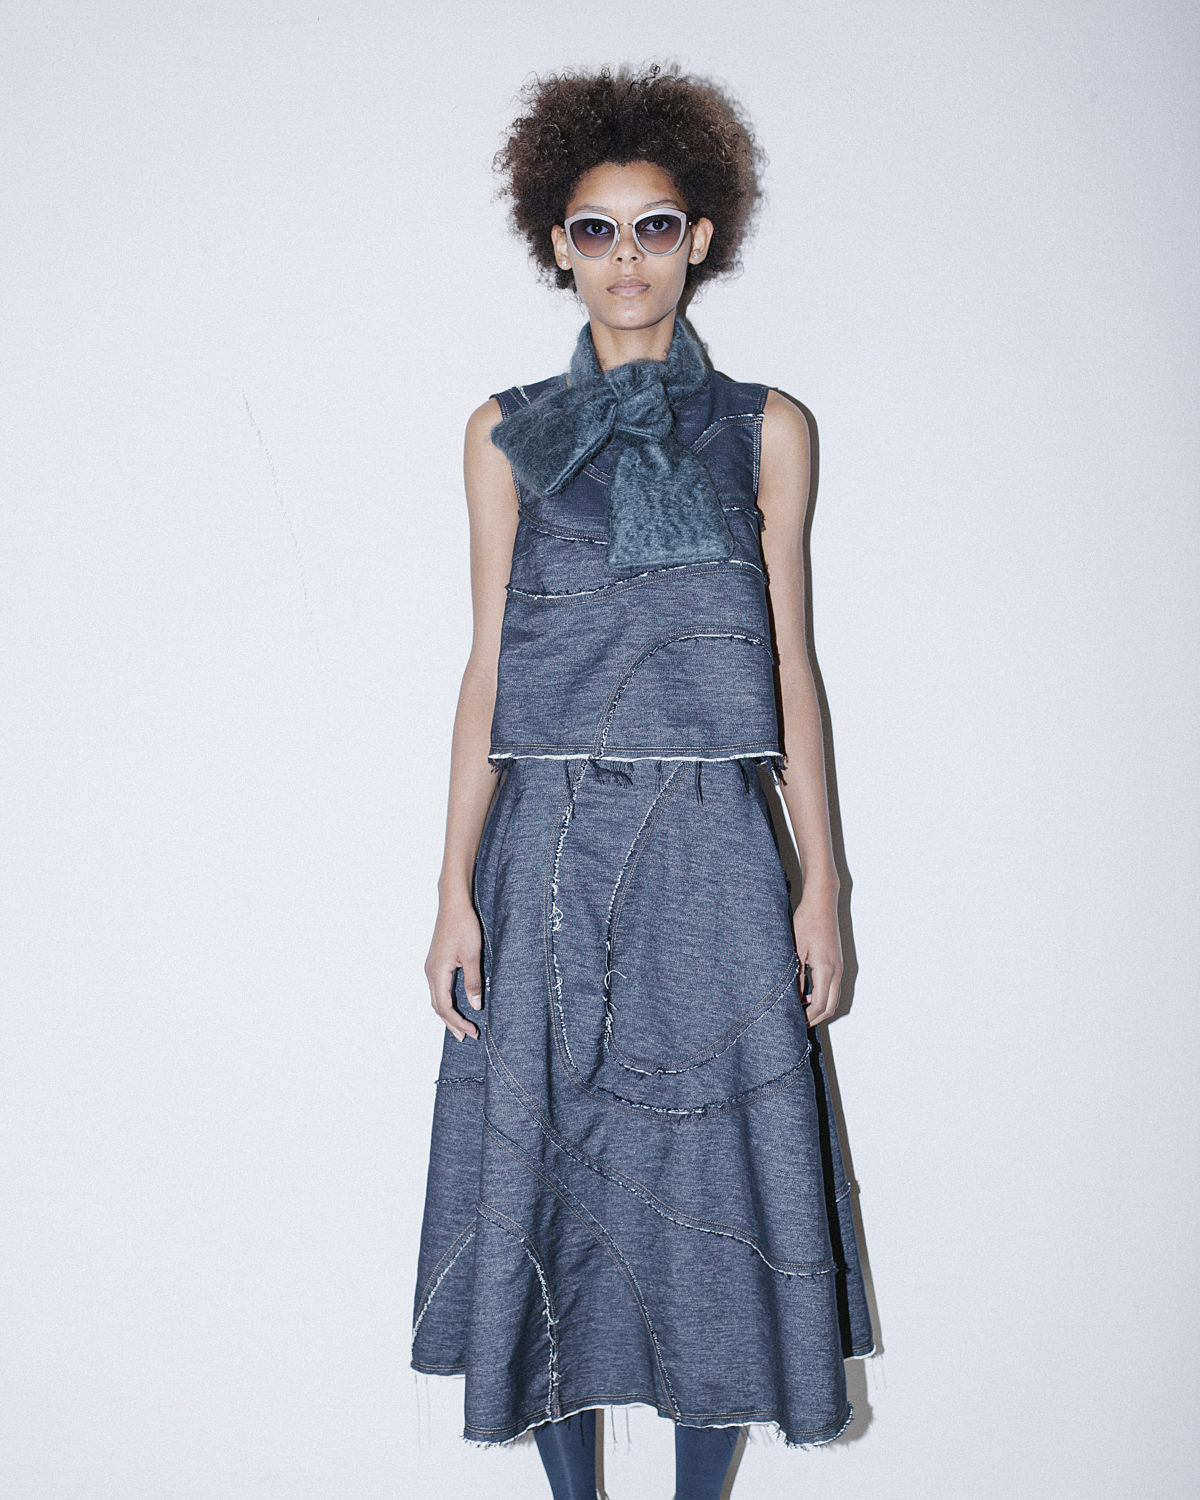 Odeeh FW20 Backstage Top30 30